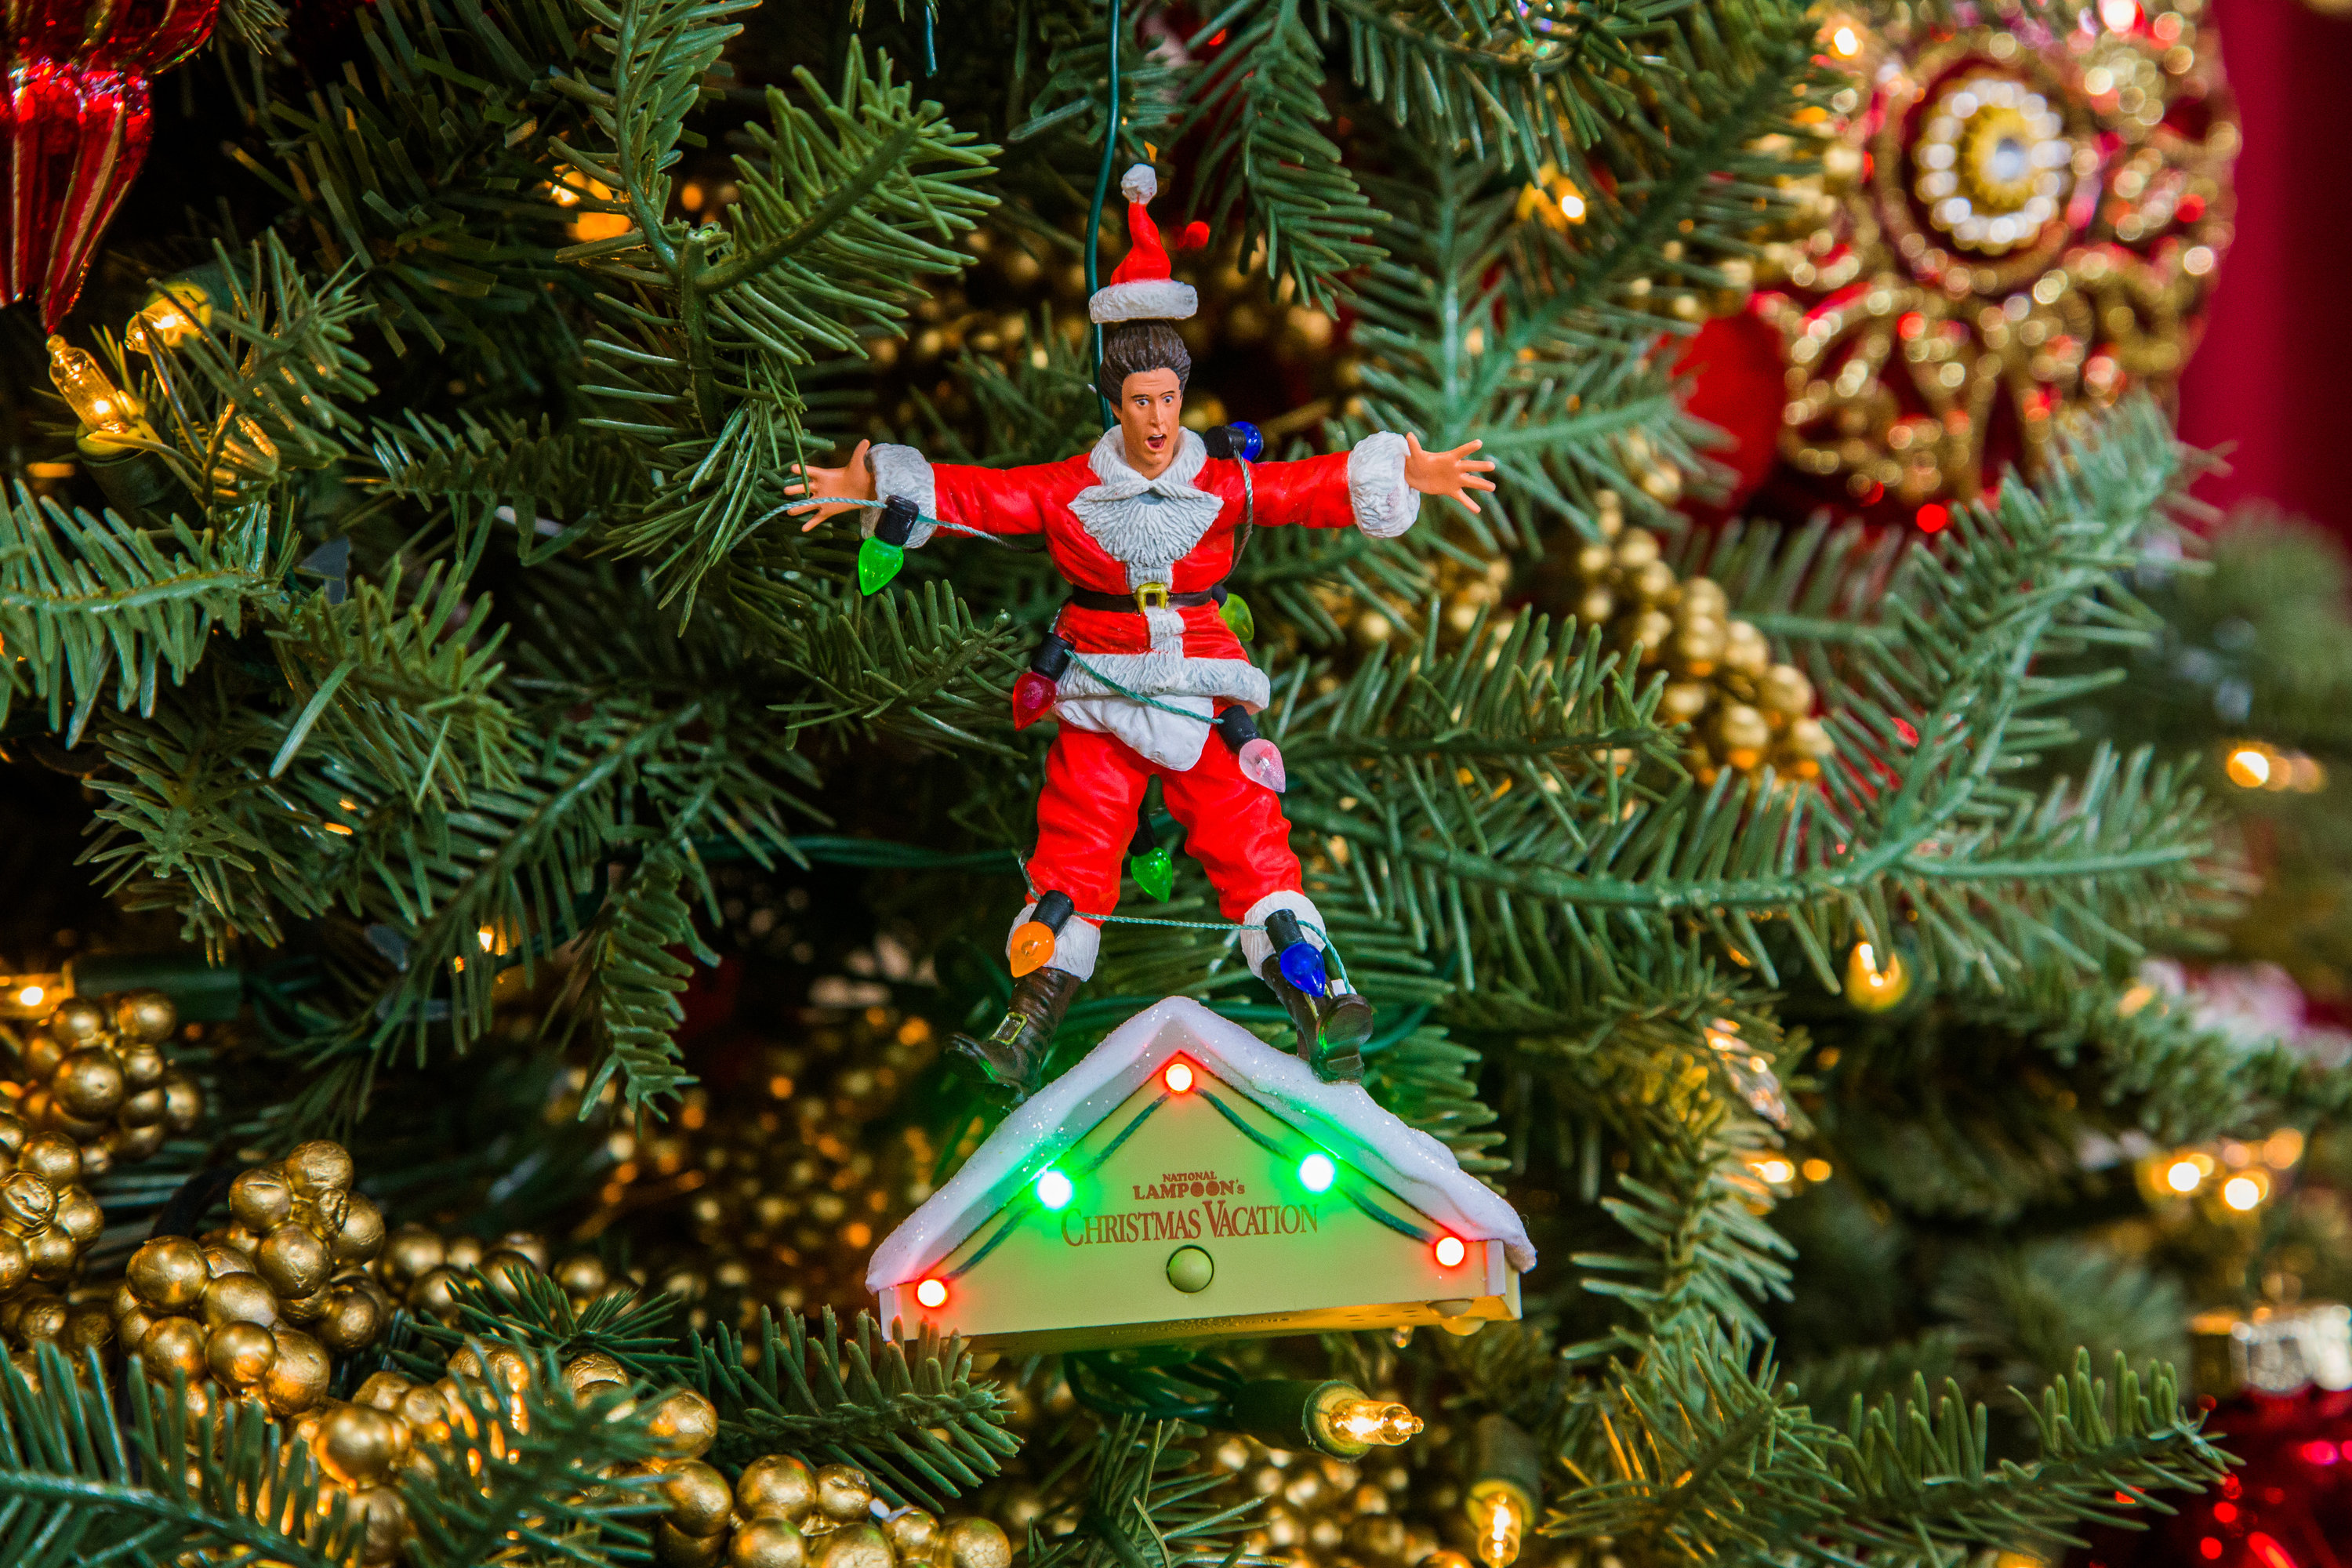 Keepsake Ornament Giveaway A Fun Old Fashioned Family Christmas